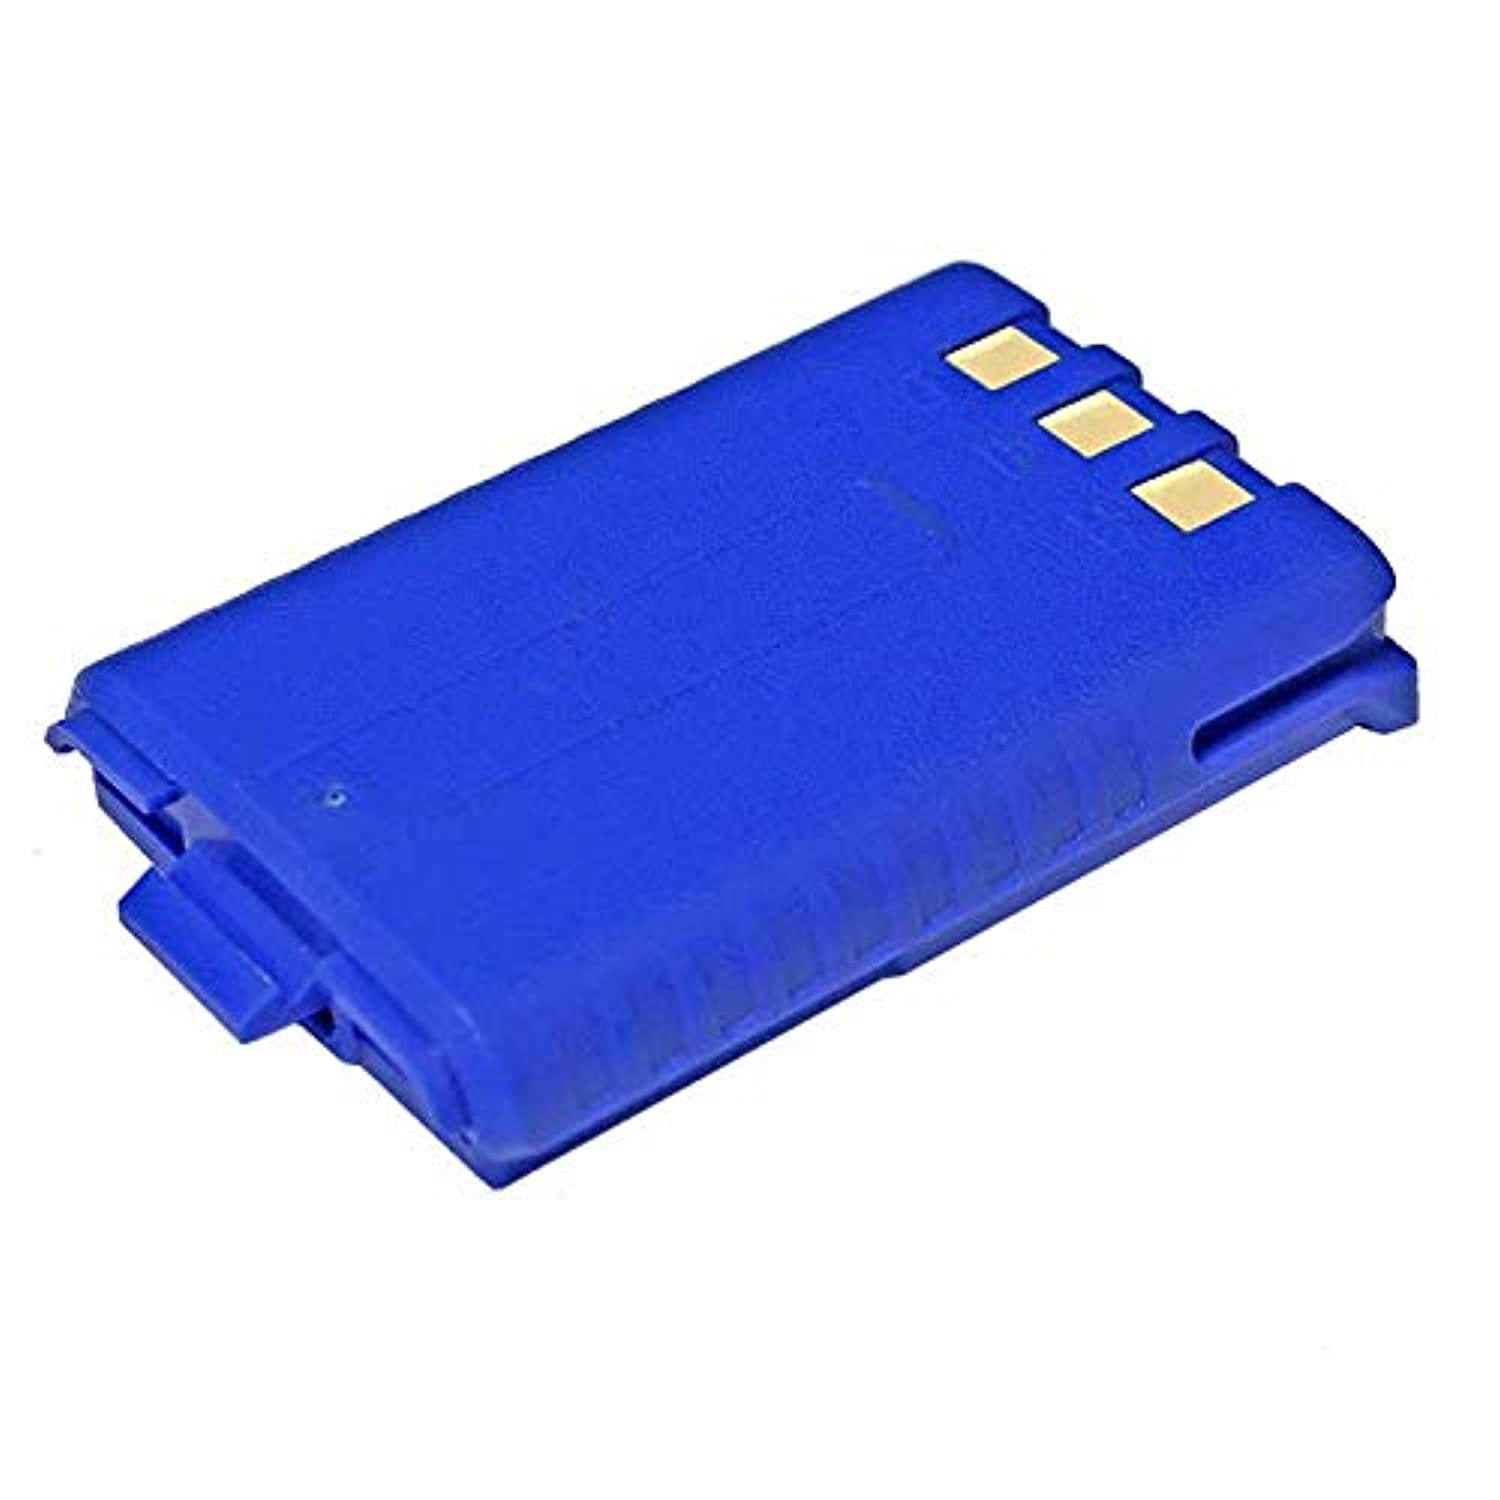 Rugged Radios BAT-RH5R Replacement Battery for RH-5R Handheld Radio - Rechargeable Lithium Ion Battery Pack